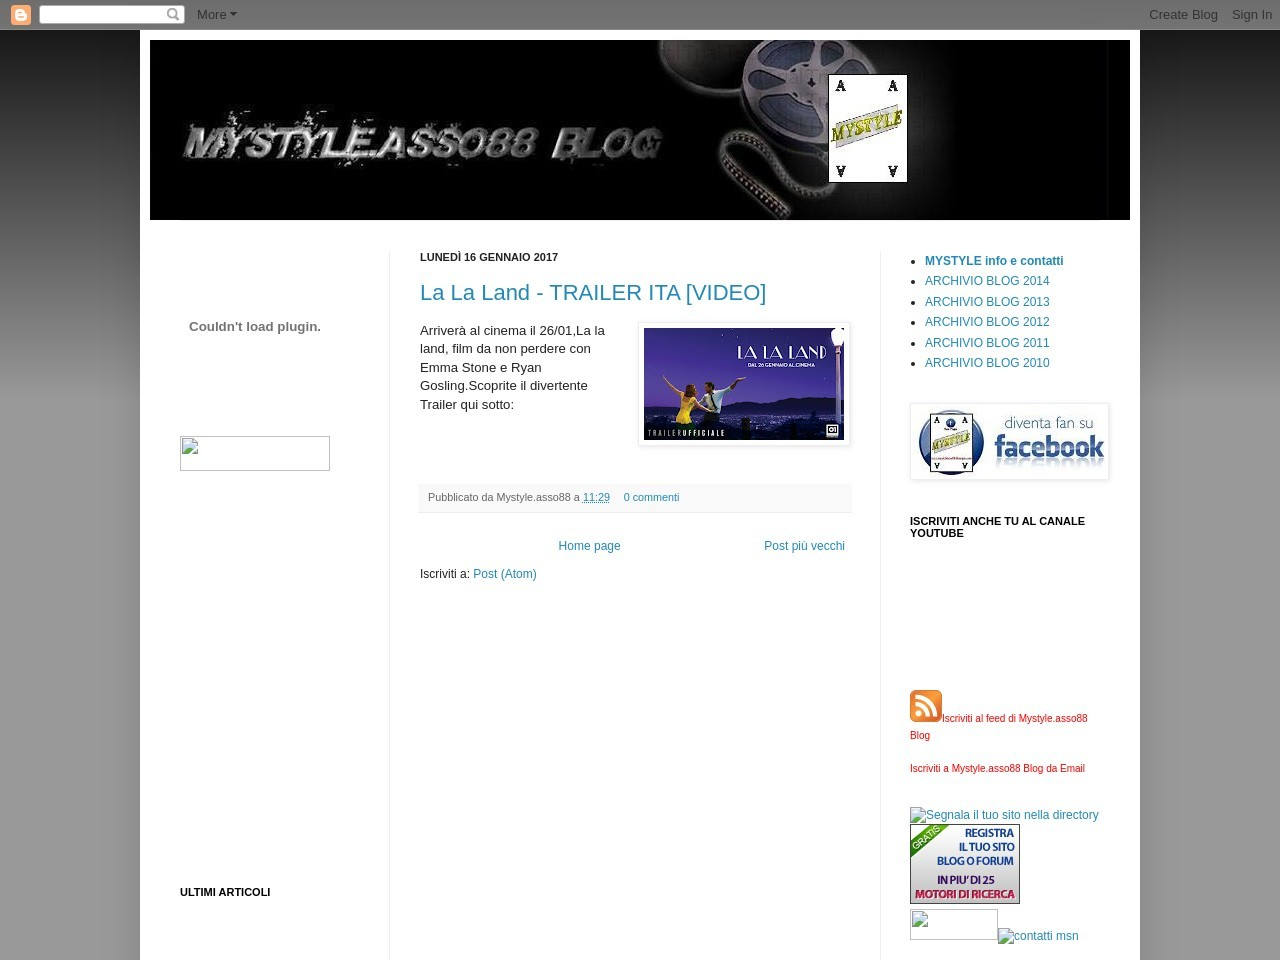 mystyle-asso88-blog